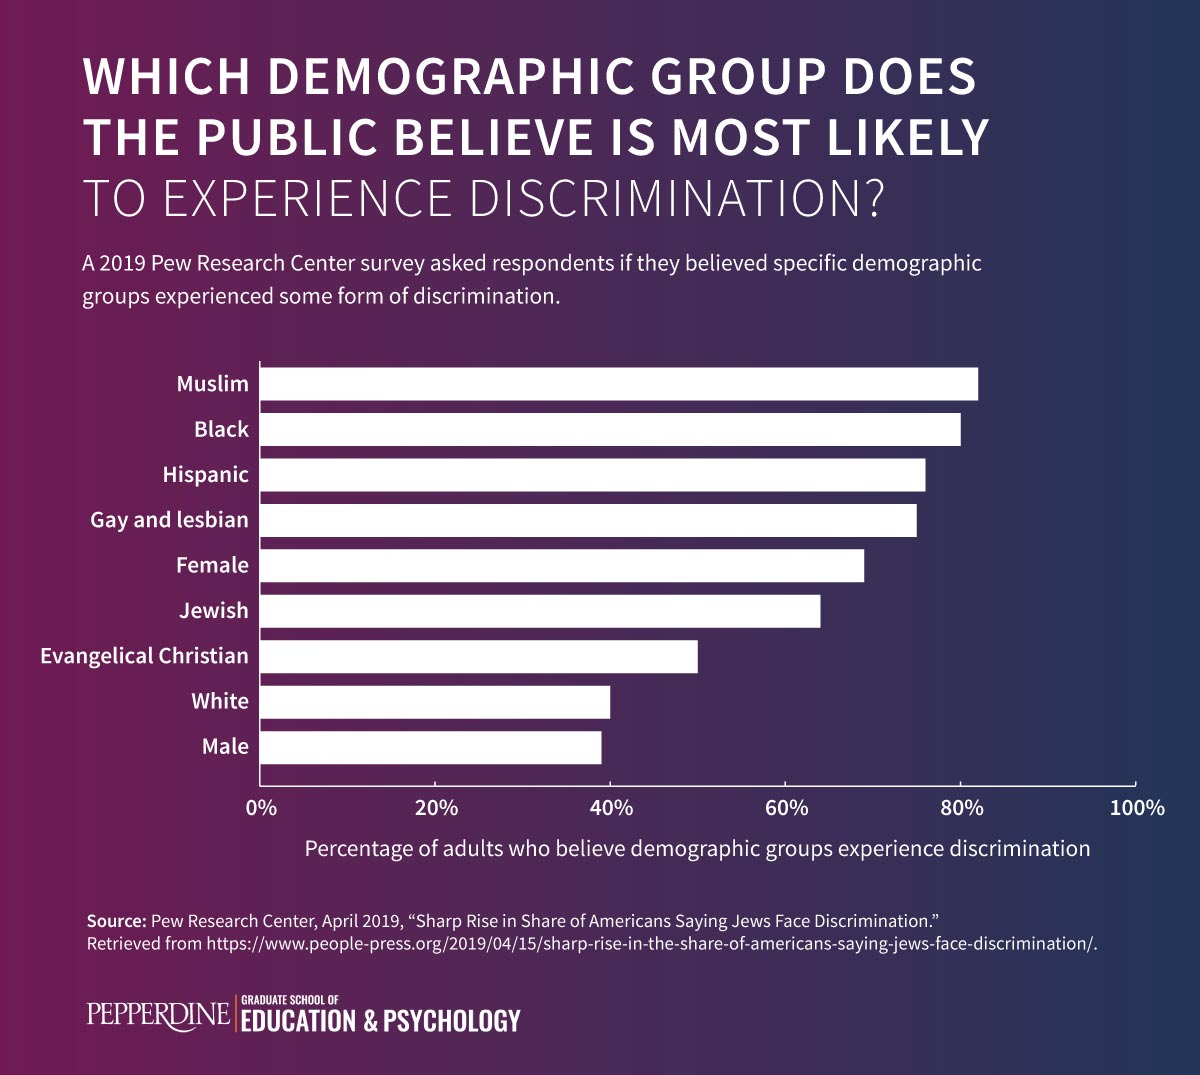 Bar graph comparing the percentage of adults who believe demographic groups experience discrimination.